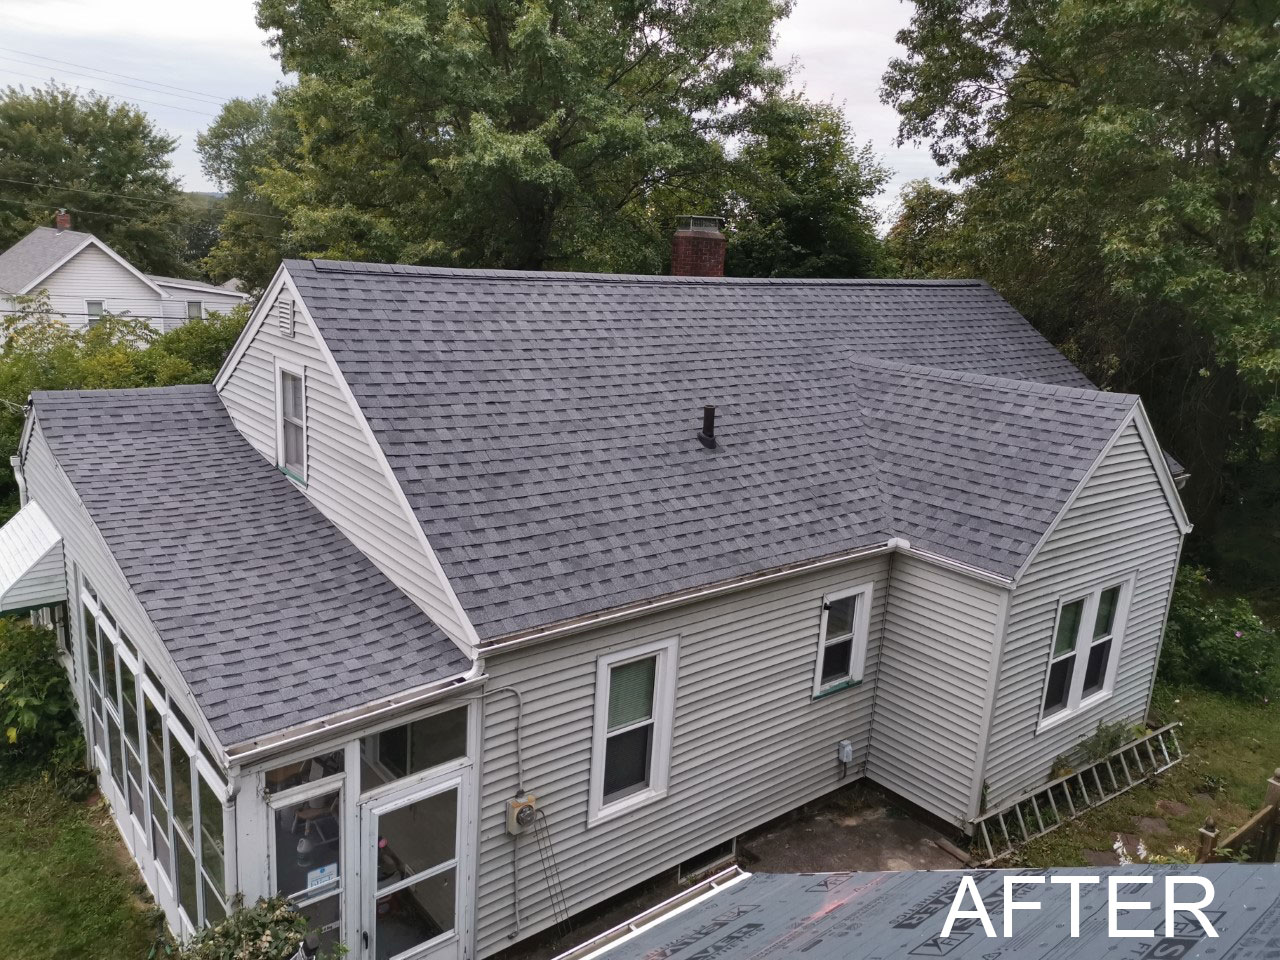 Arrange for a metal or asphalt roof replacement in Sugarcreek, OH